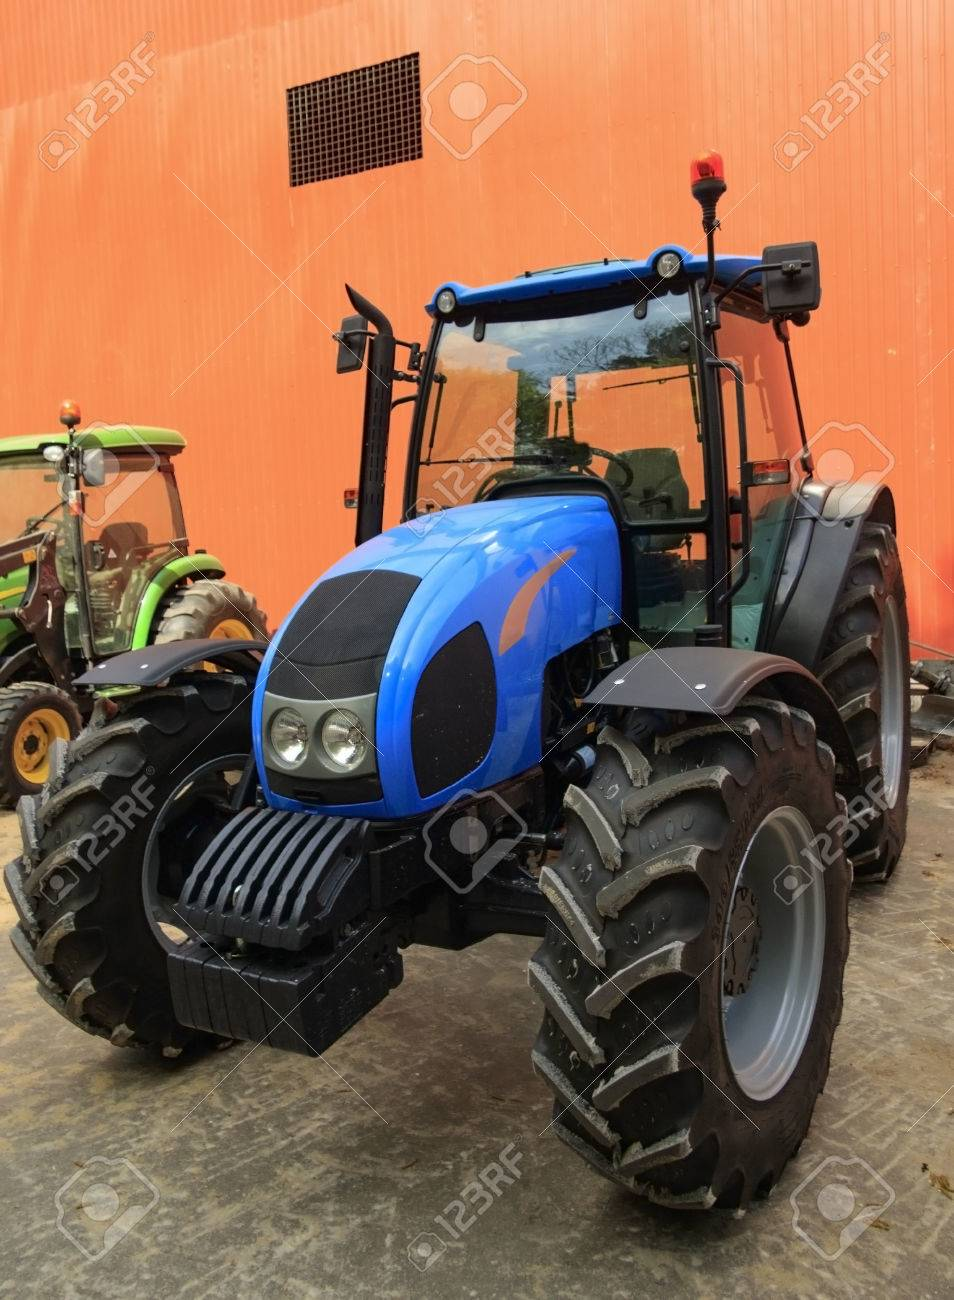 Tractor in the yard of the farmer - 78004716